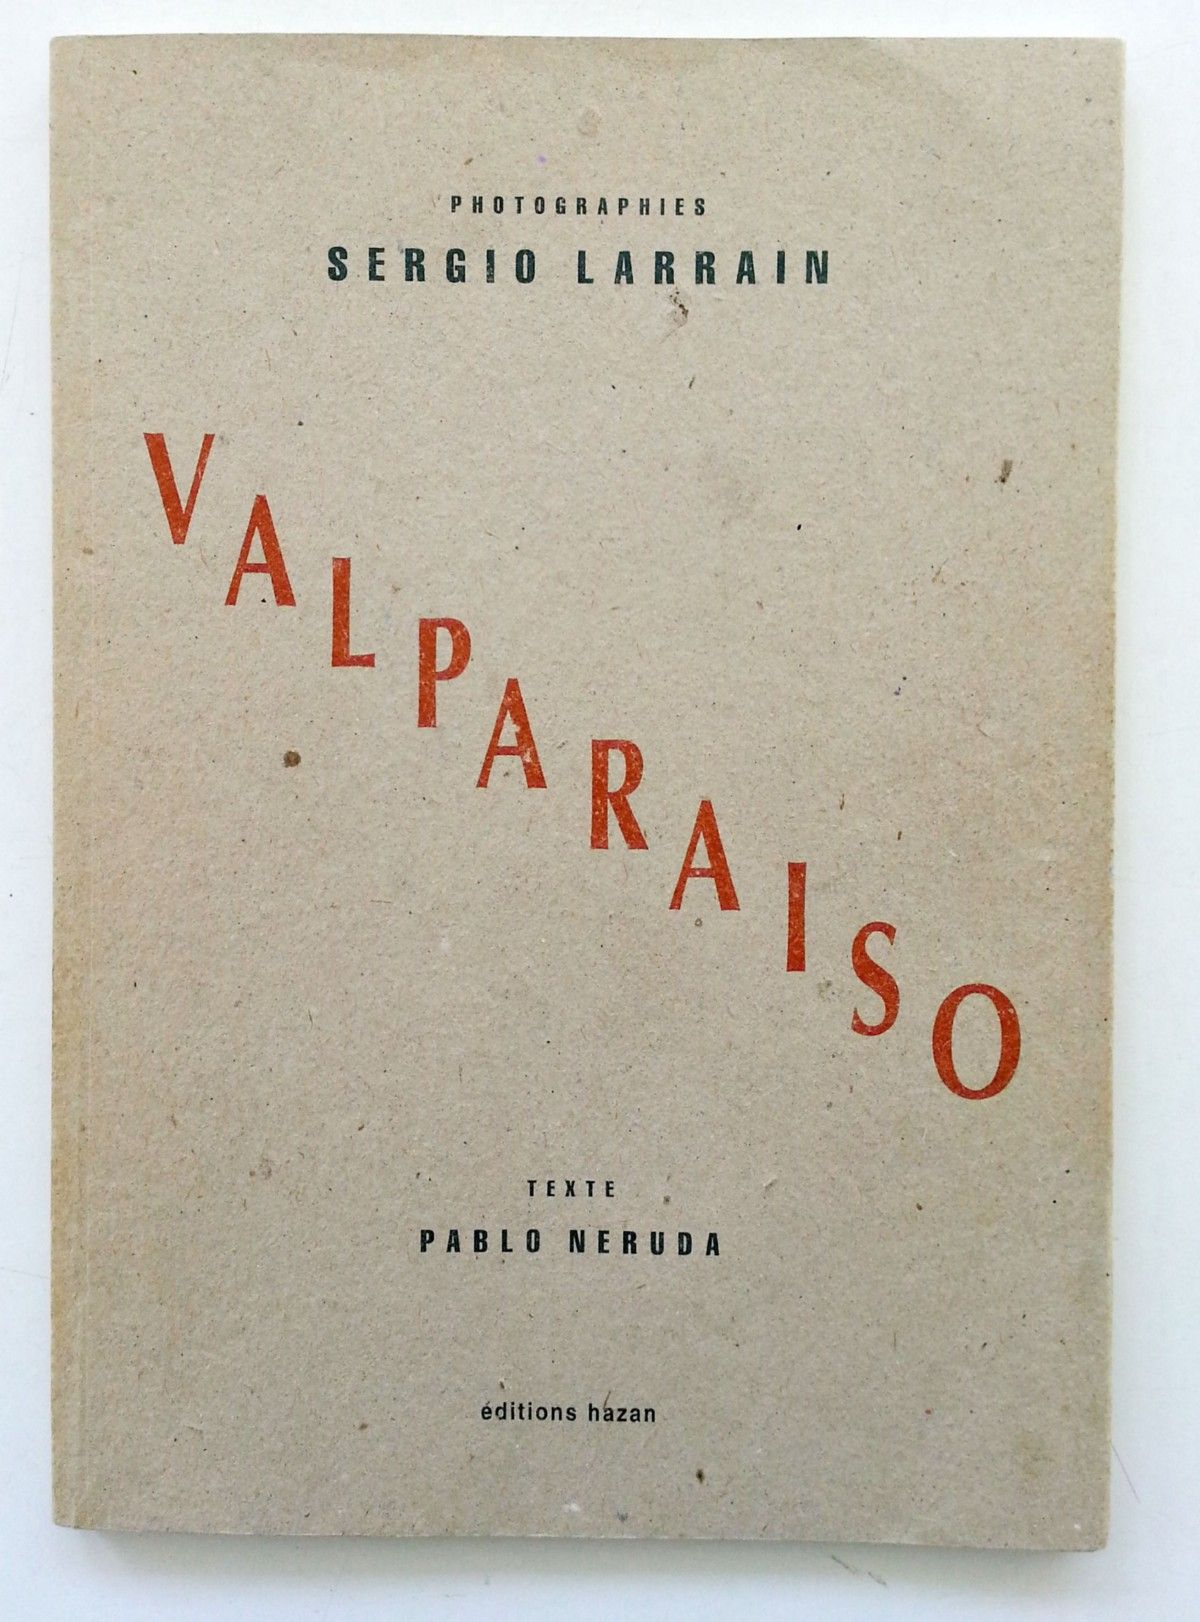 (fig 5.: The cover of the inaugural edition of Valparaiso)